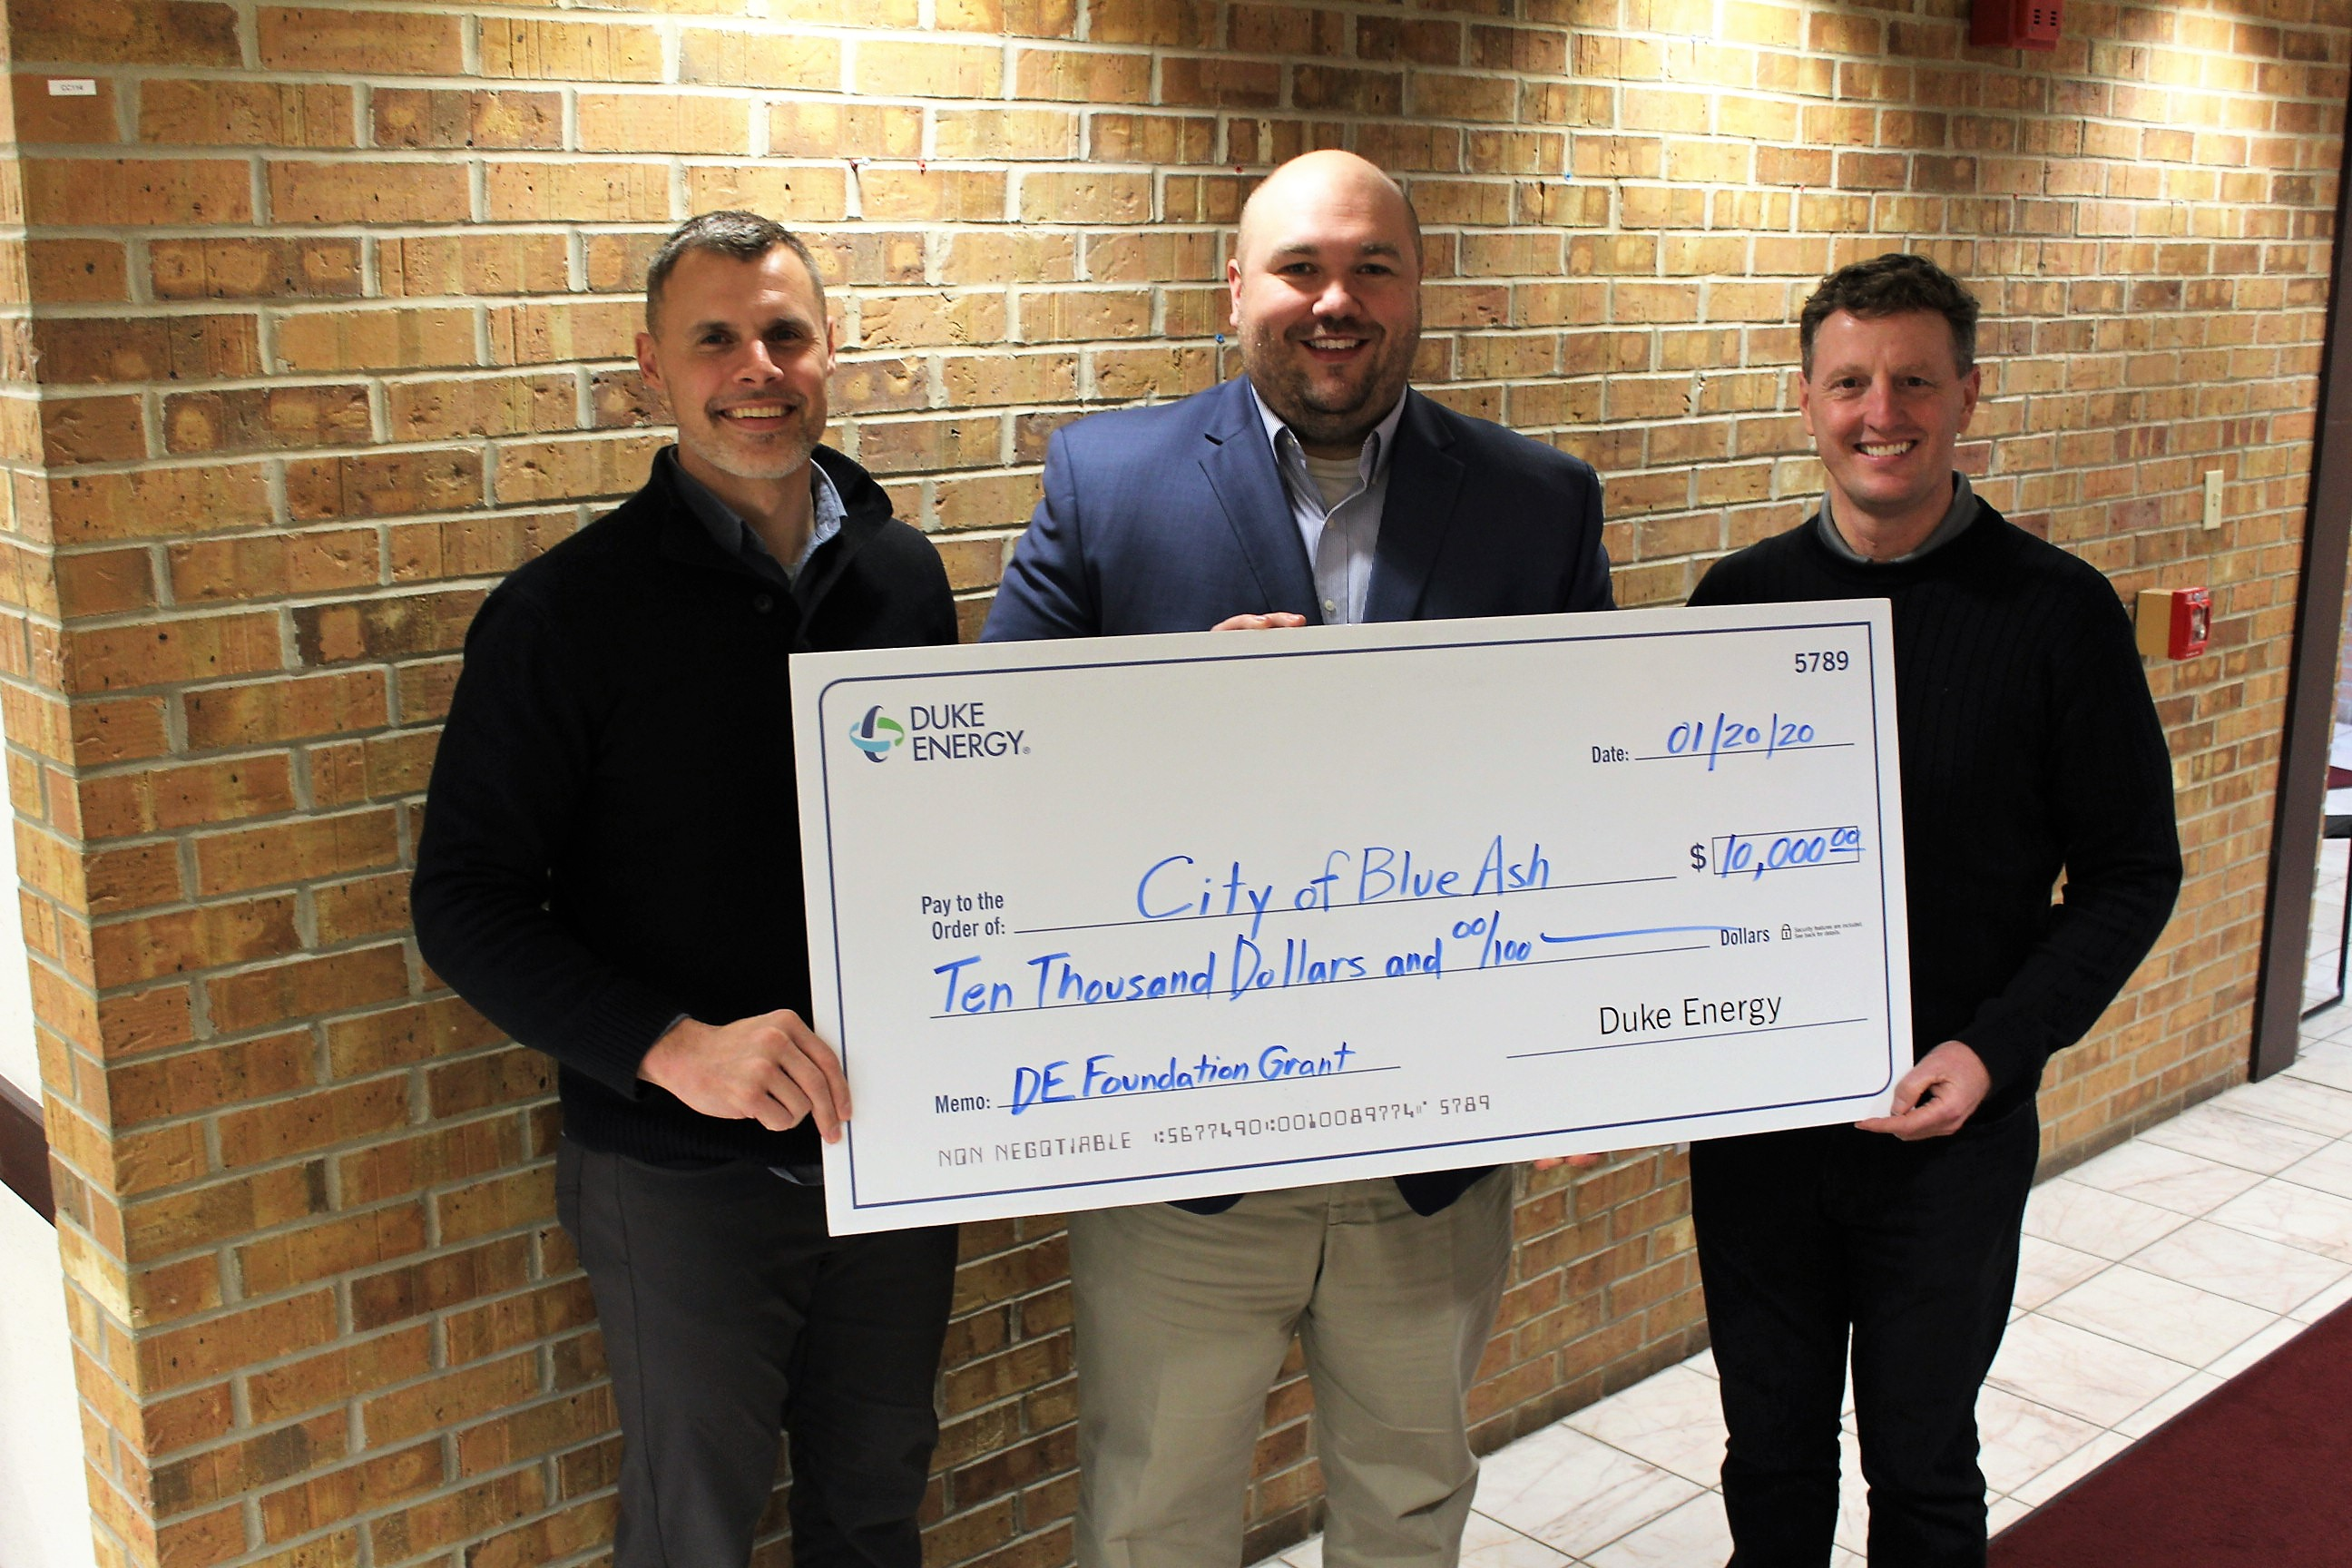 Blue Ash Parks and Recreation Director Brian Kruse, Duke Energy Sr. Government Affairs Specialist J. Chad Shaffer, and Blue Ash City Manager David Waltz holding giant check